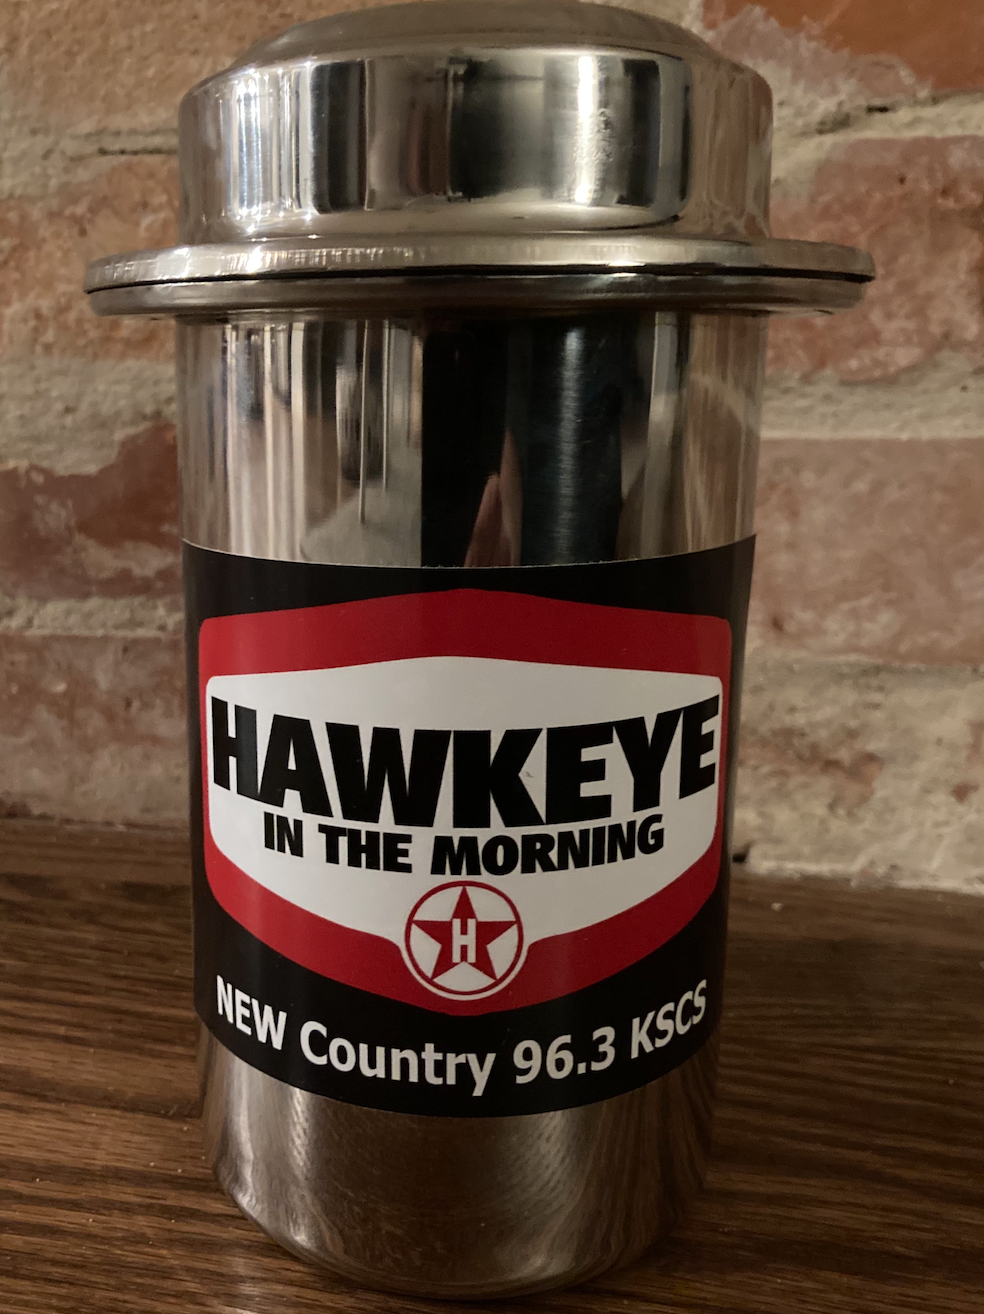 The Burying of the Hawkeye in the Morning Time Capsule – What Went Inside the Time Capsule?